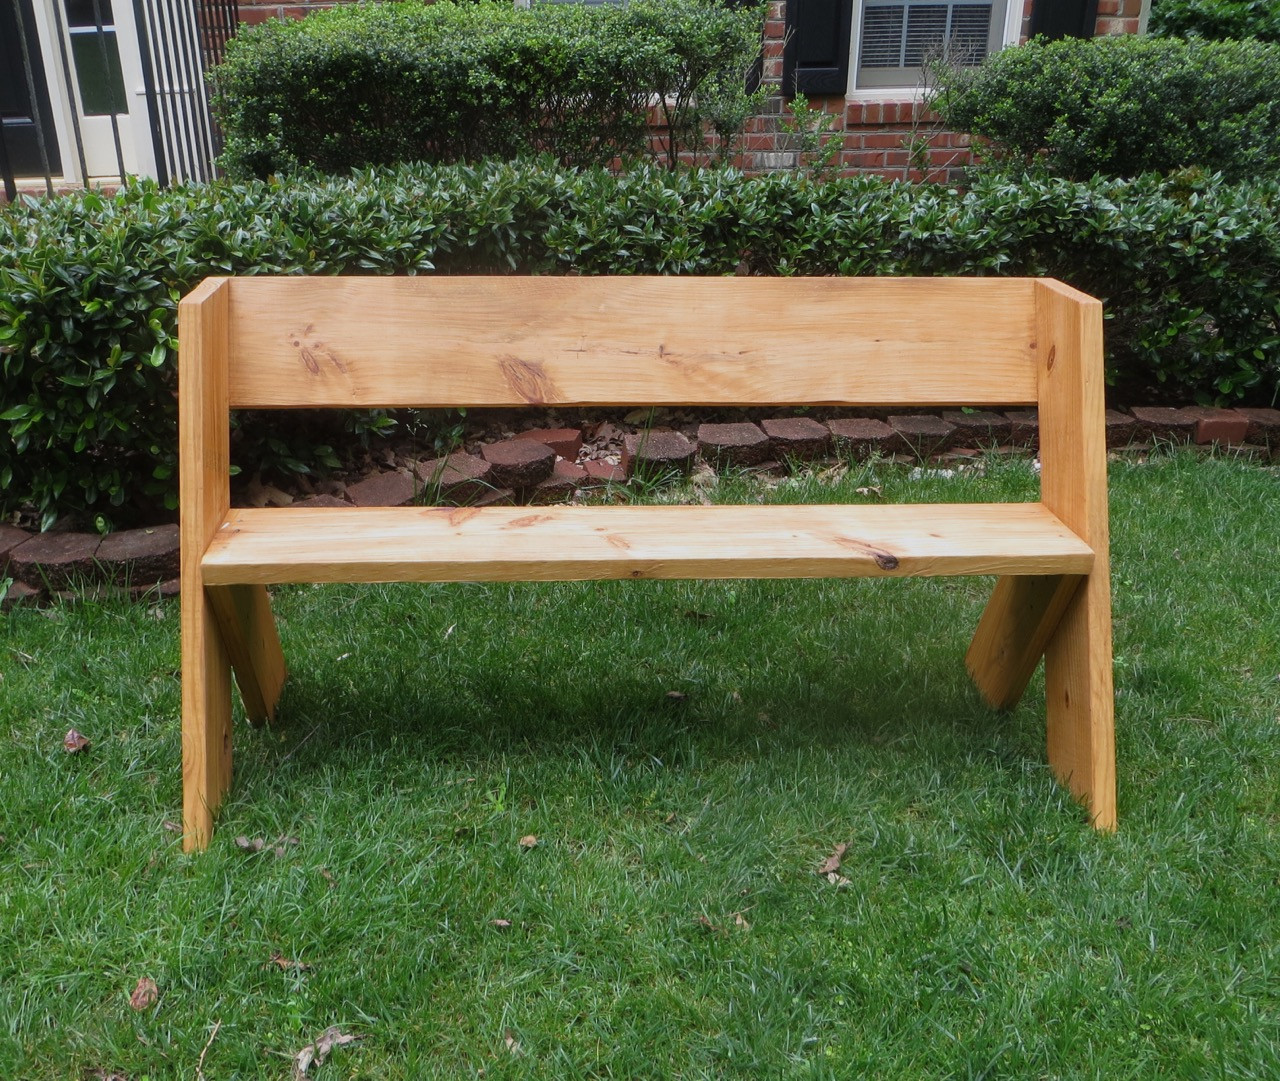 DIY Outdoor Workbench  The Project Lady DIY Tutorial – $16 Simple Outdoor Wood